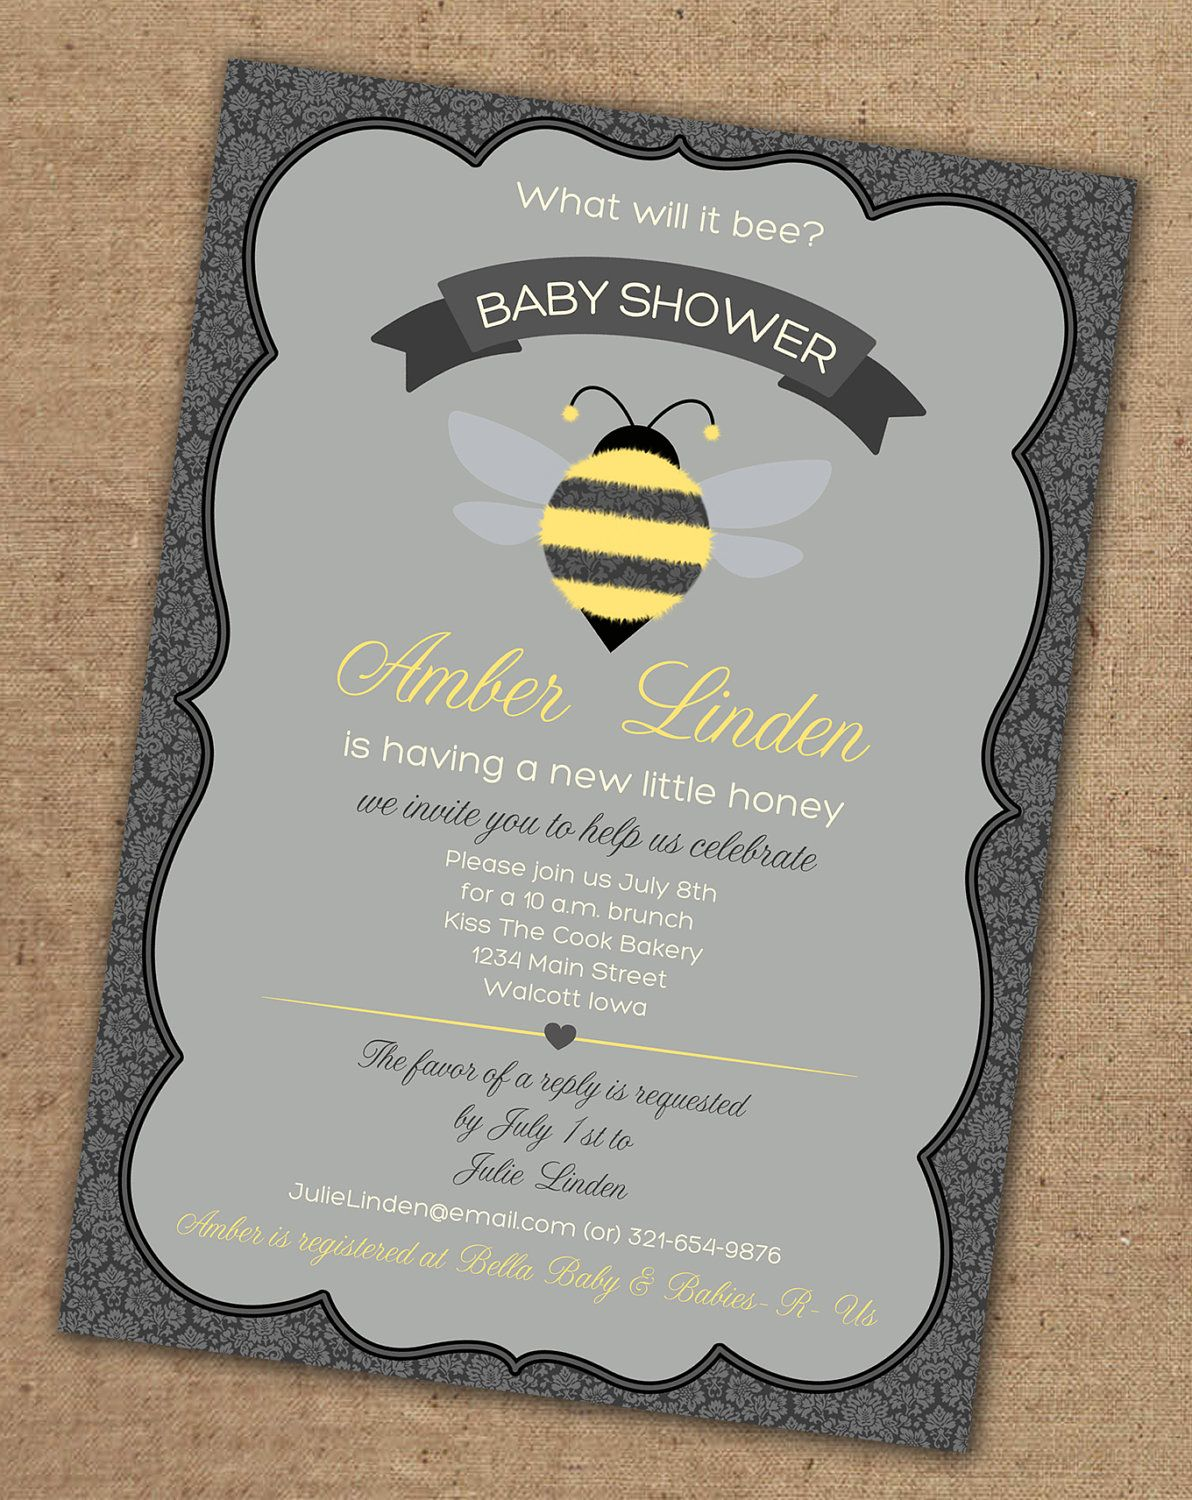 What will it BEE baby shower invitation Printable by Gretchee ...